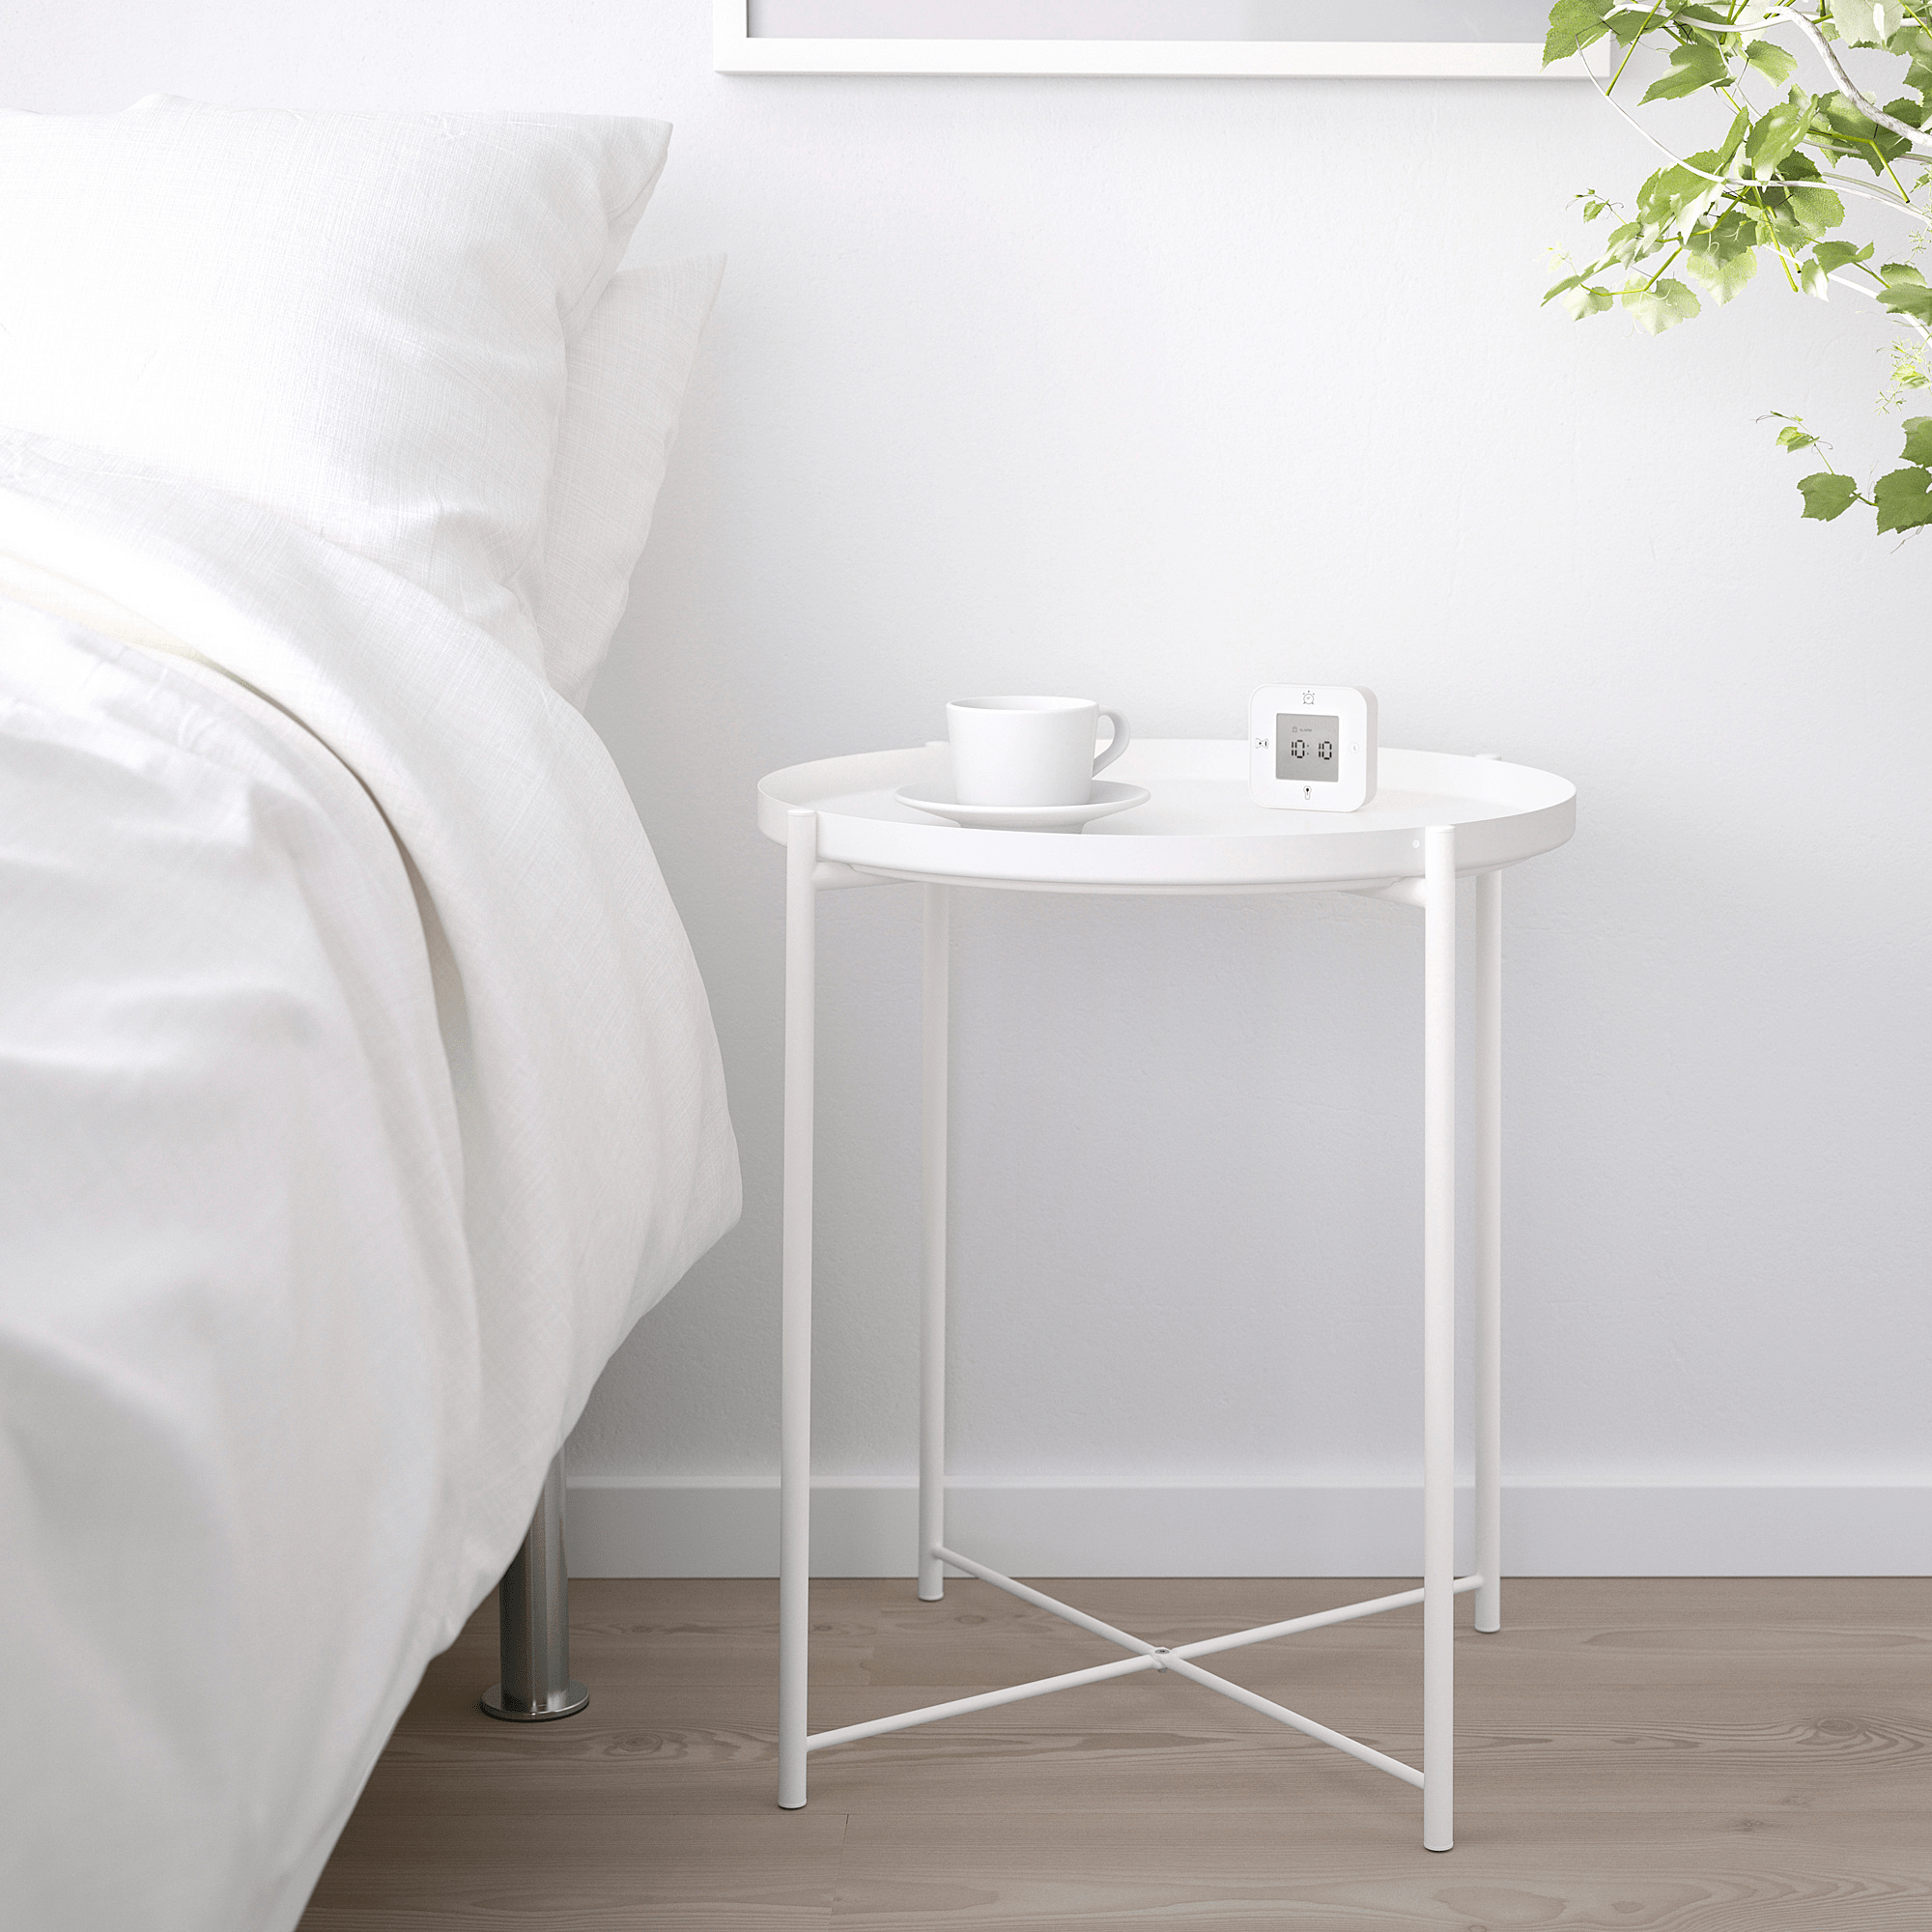 bedside-tables-singapore - gladom tray table ikea